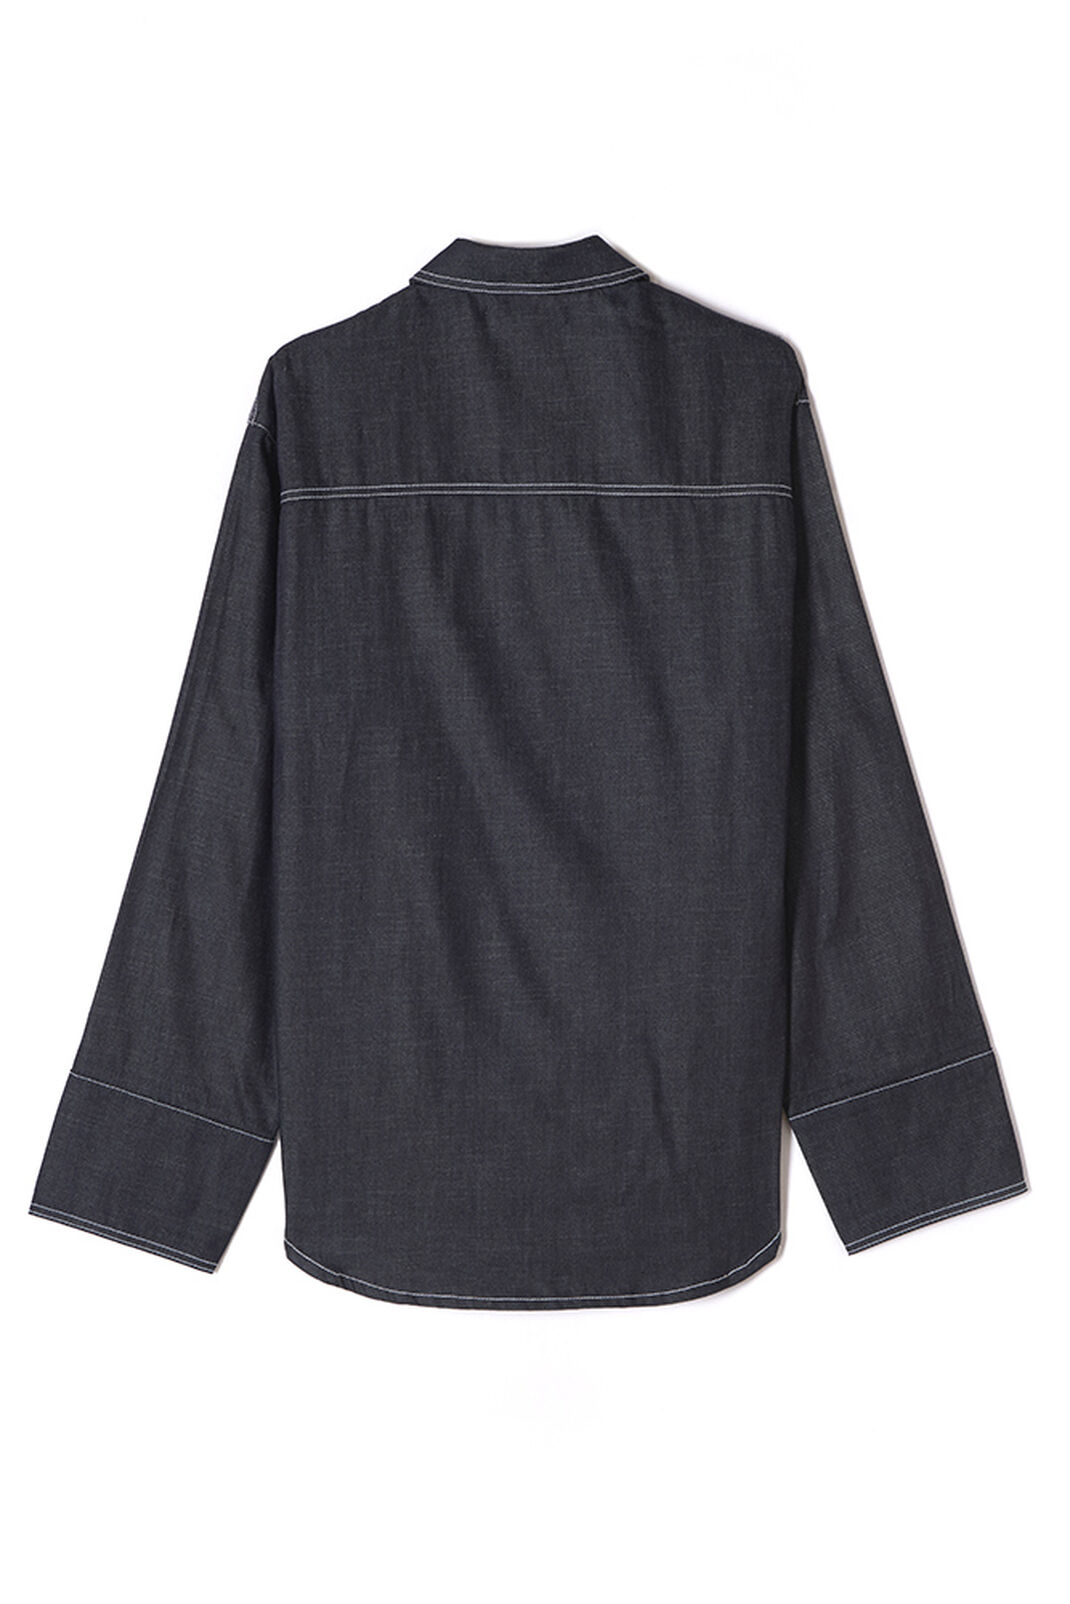 NAVY BLUE Oversized shirt for women KENZO